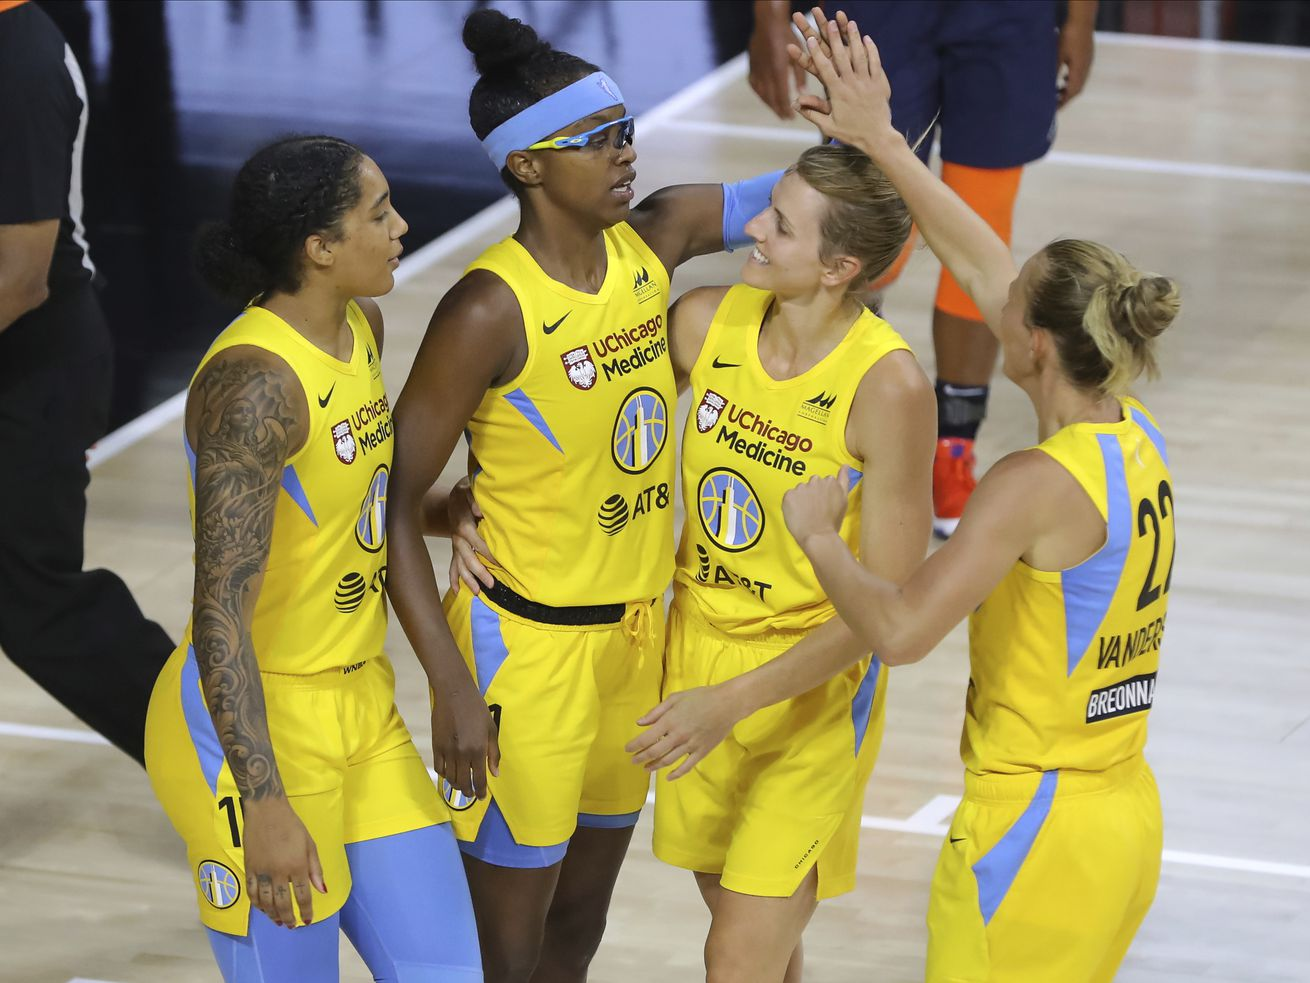 The Sky's game against the Fever is among those postponed by the WNBA.